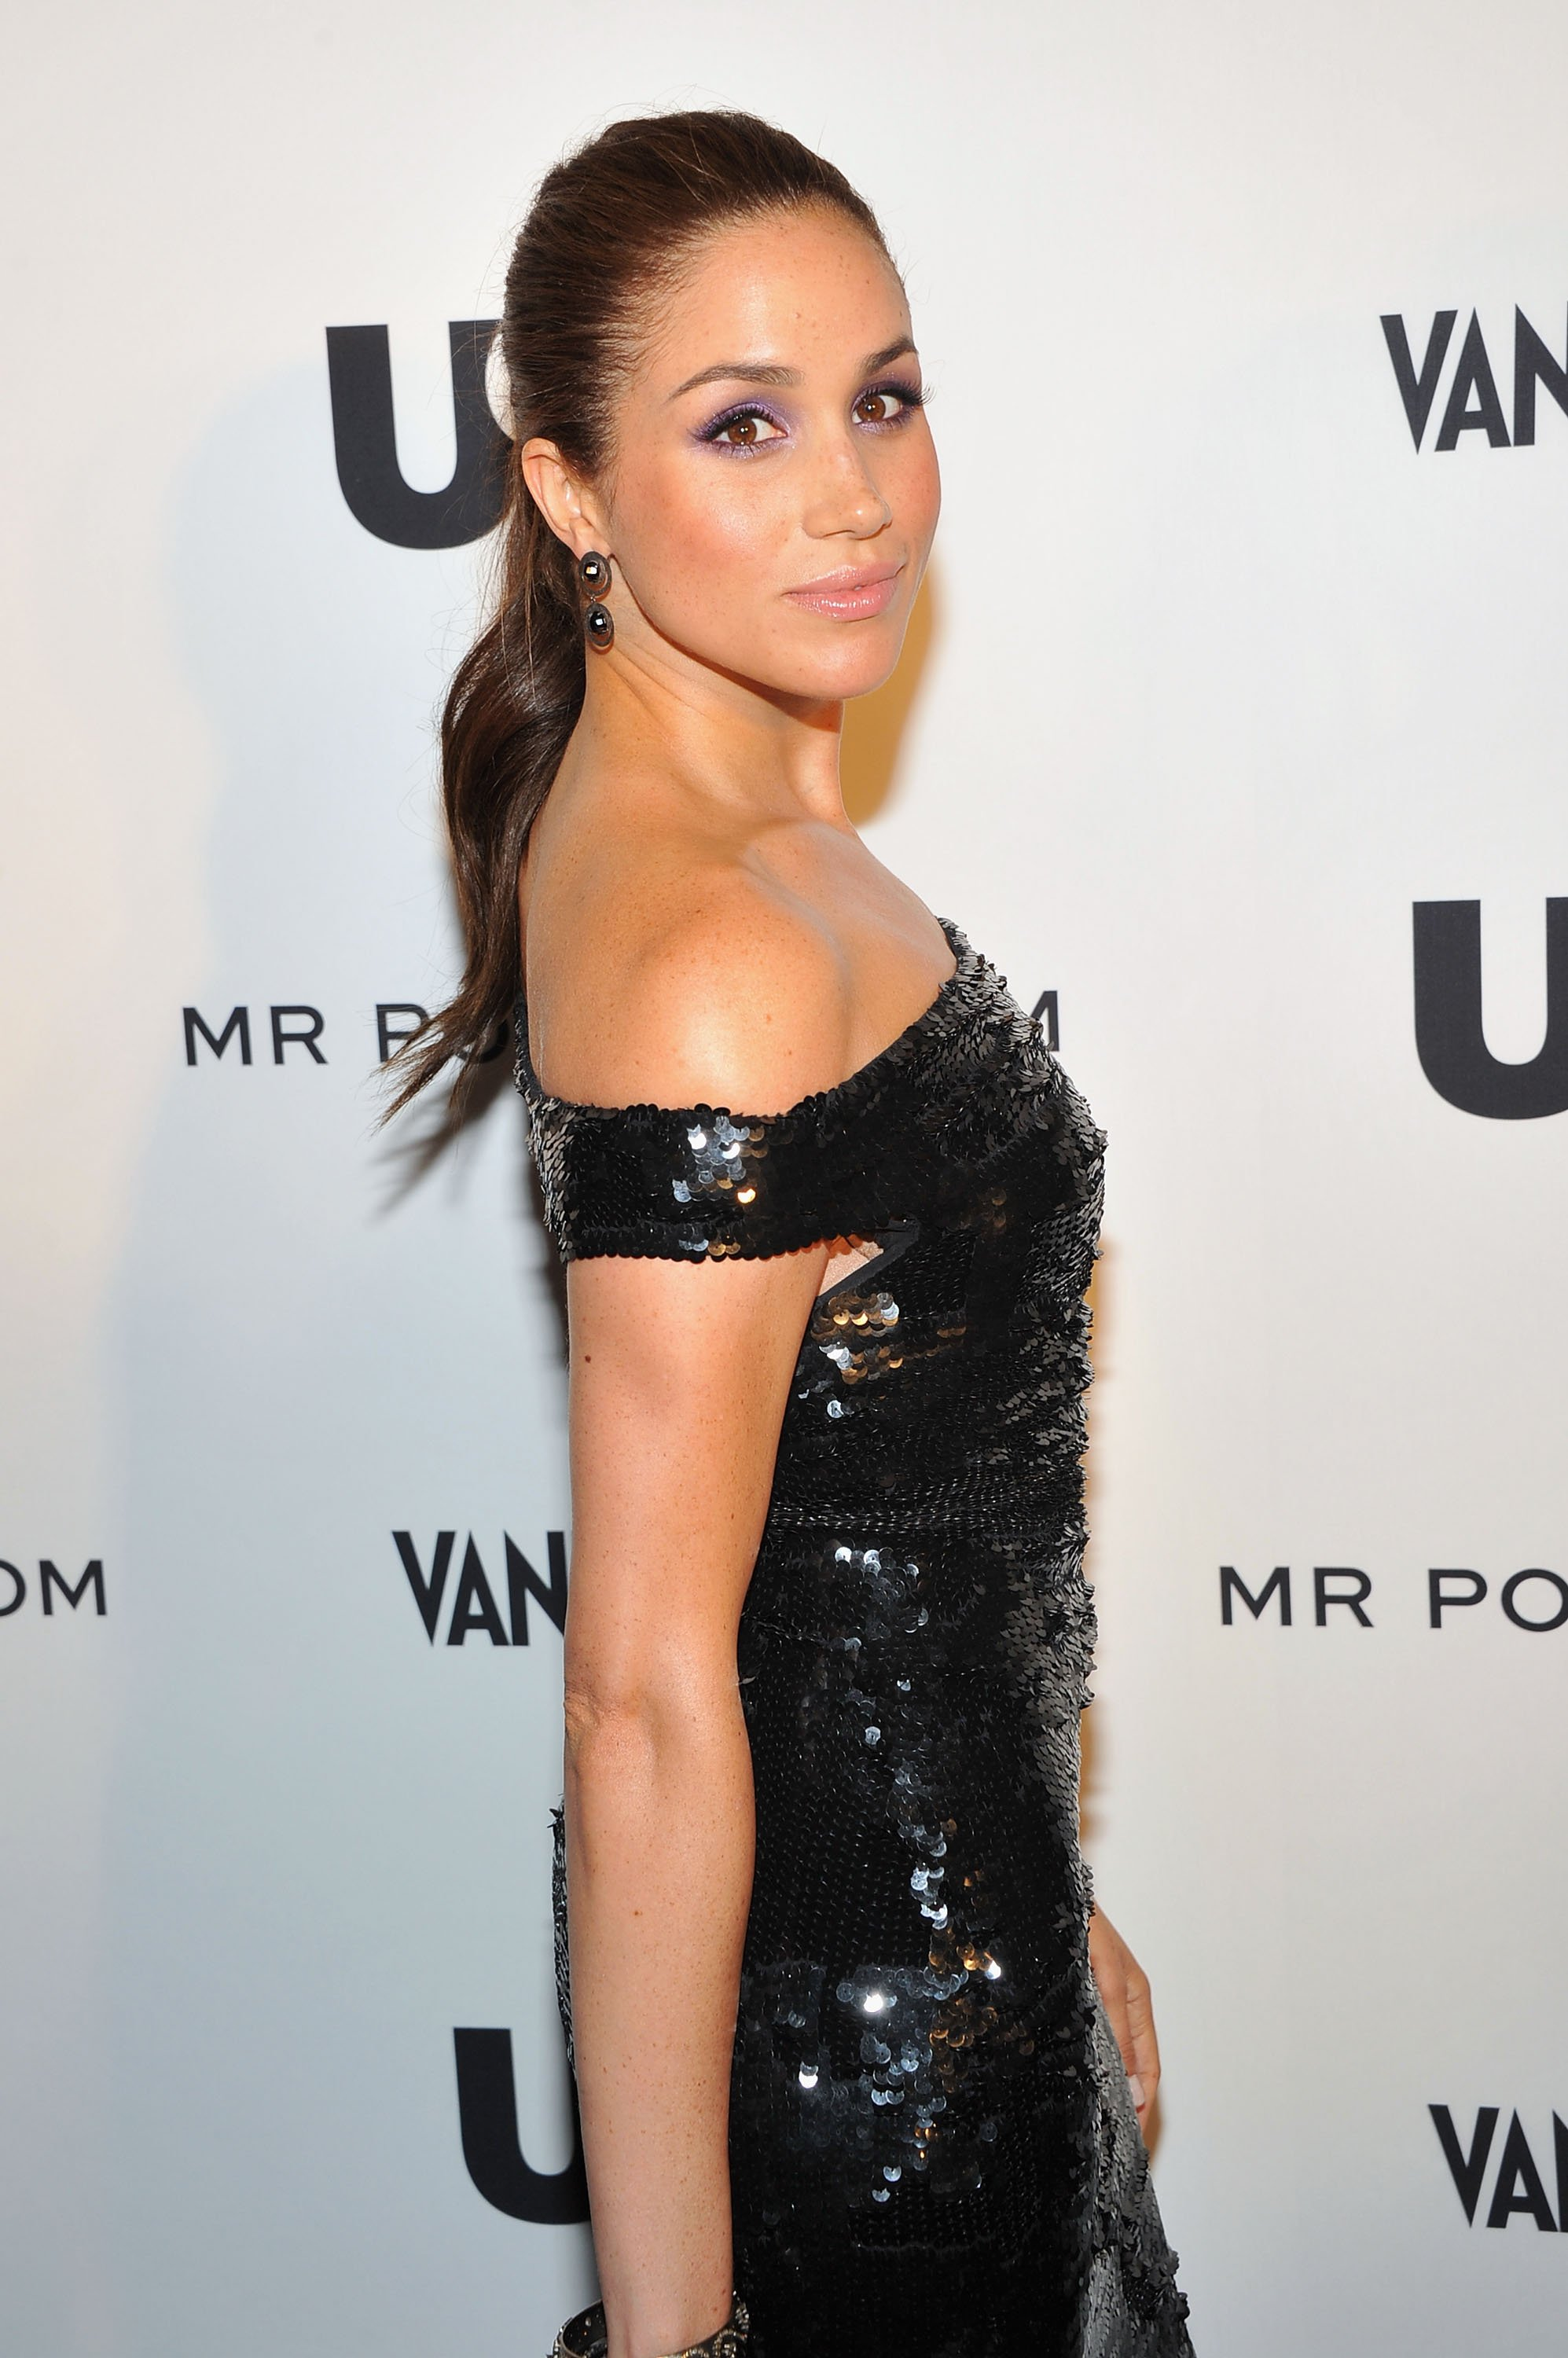 """Meghan Markle attends USA Network and Mr Porter.com Present """"A Suits Story"""" 